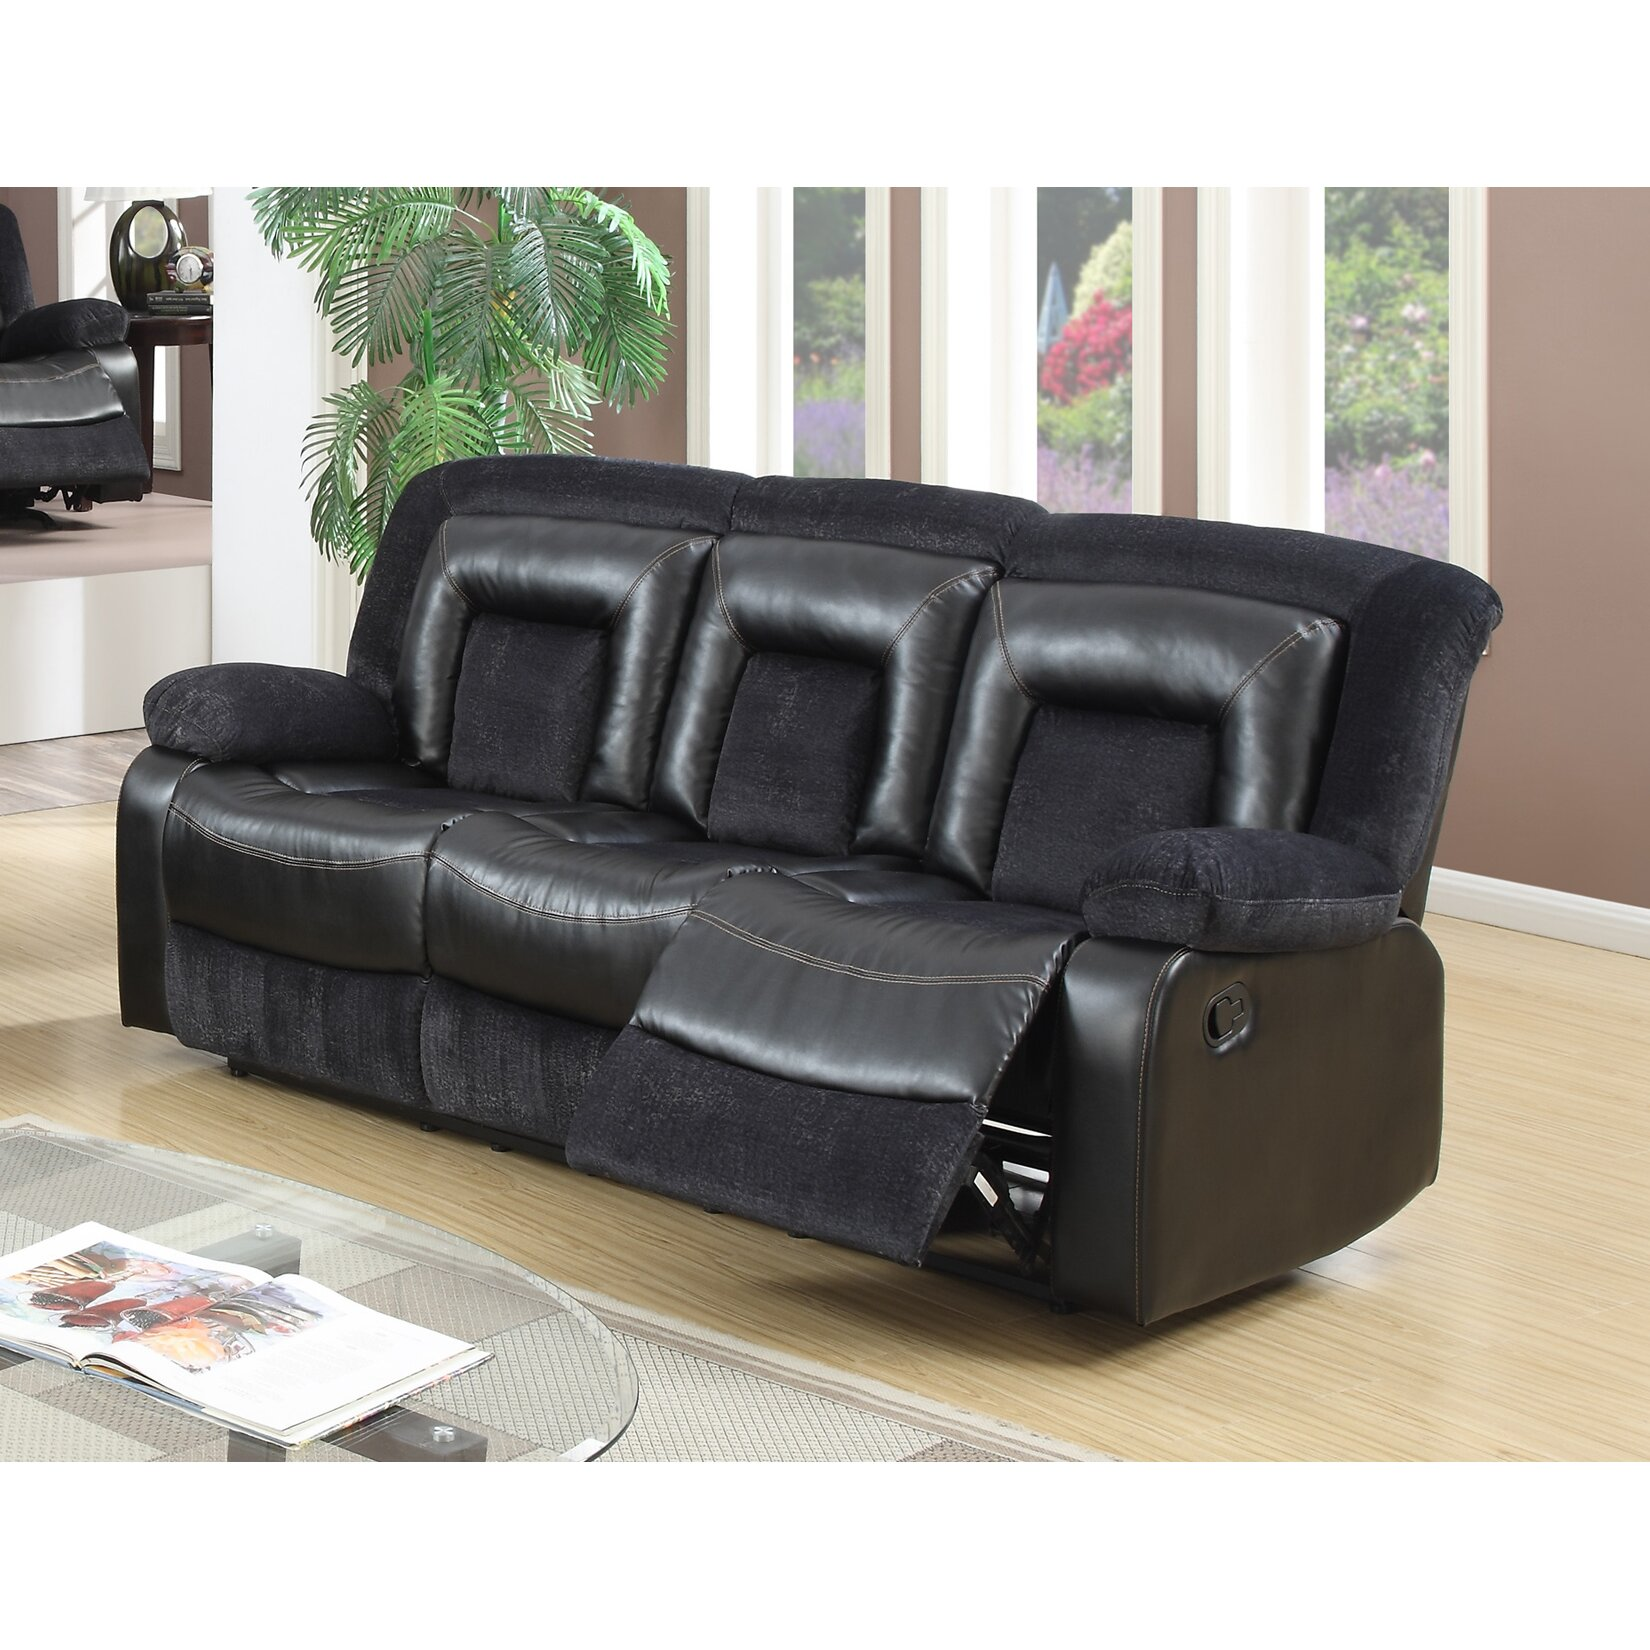 Best quality furniture recliner sofa wayfair for Best quality furniture